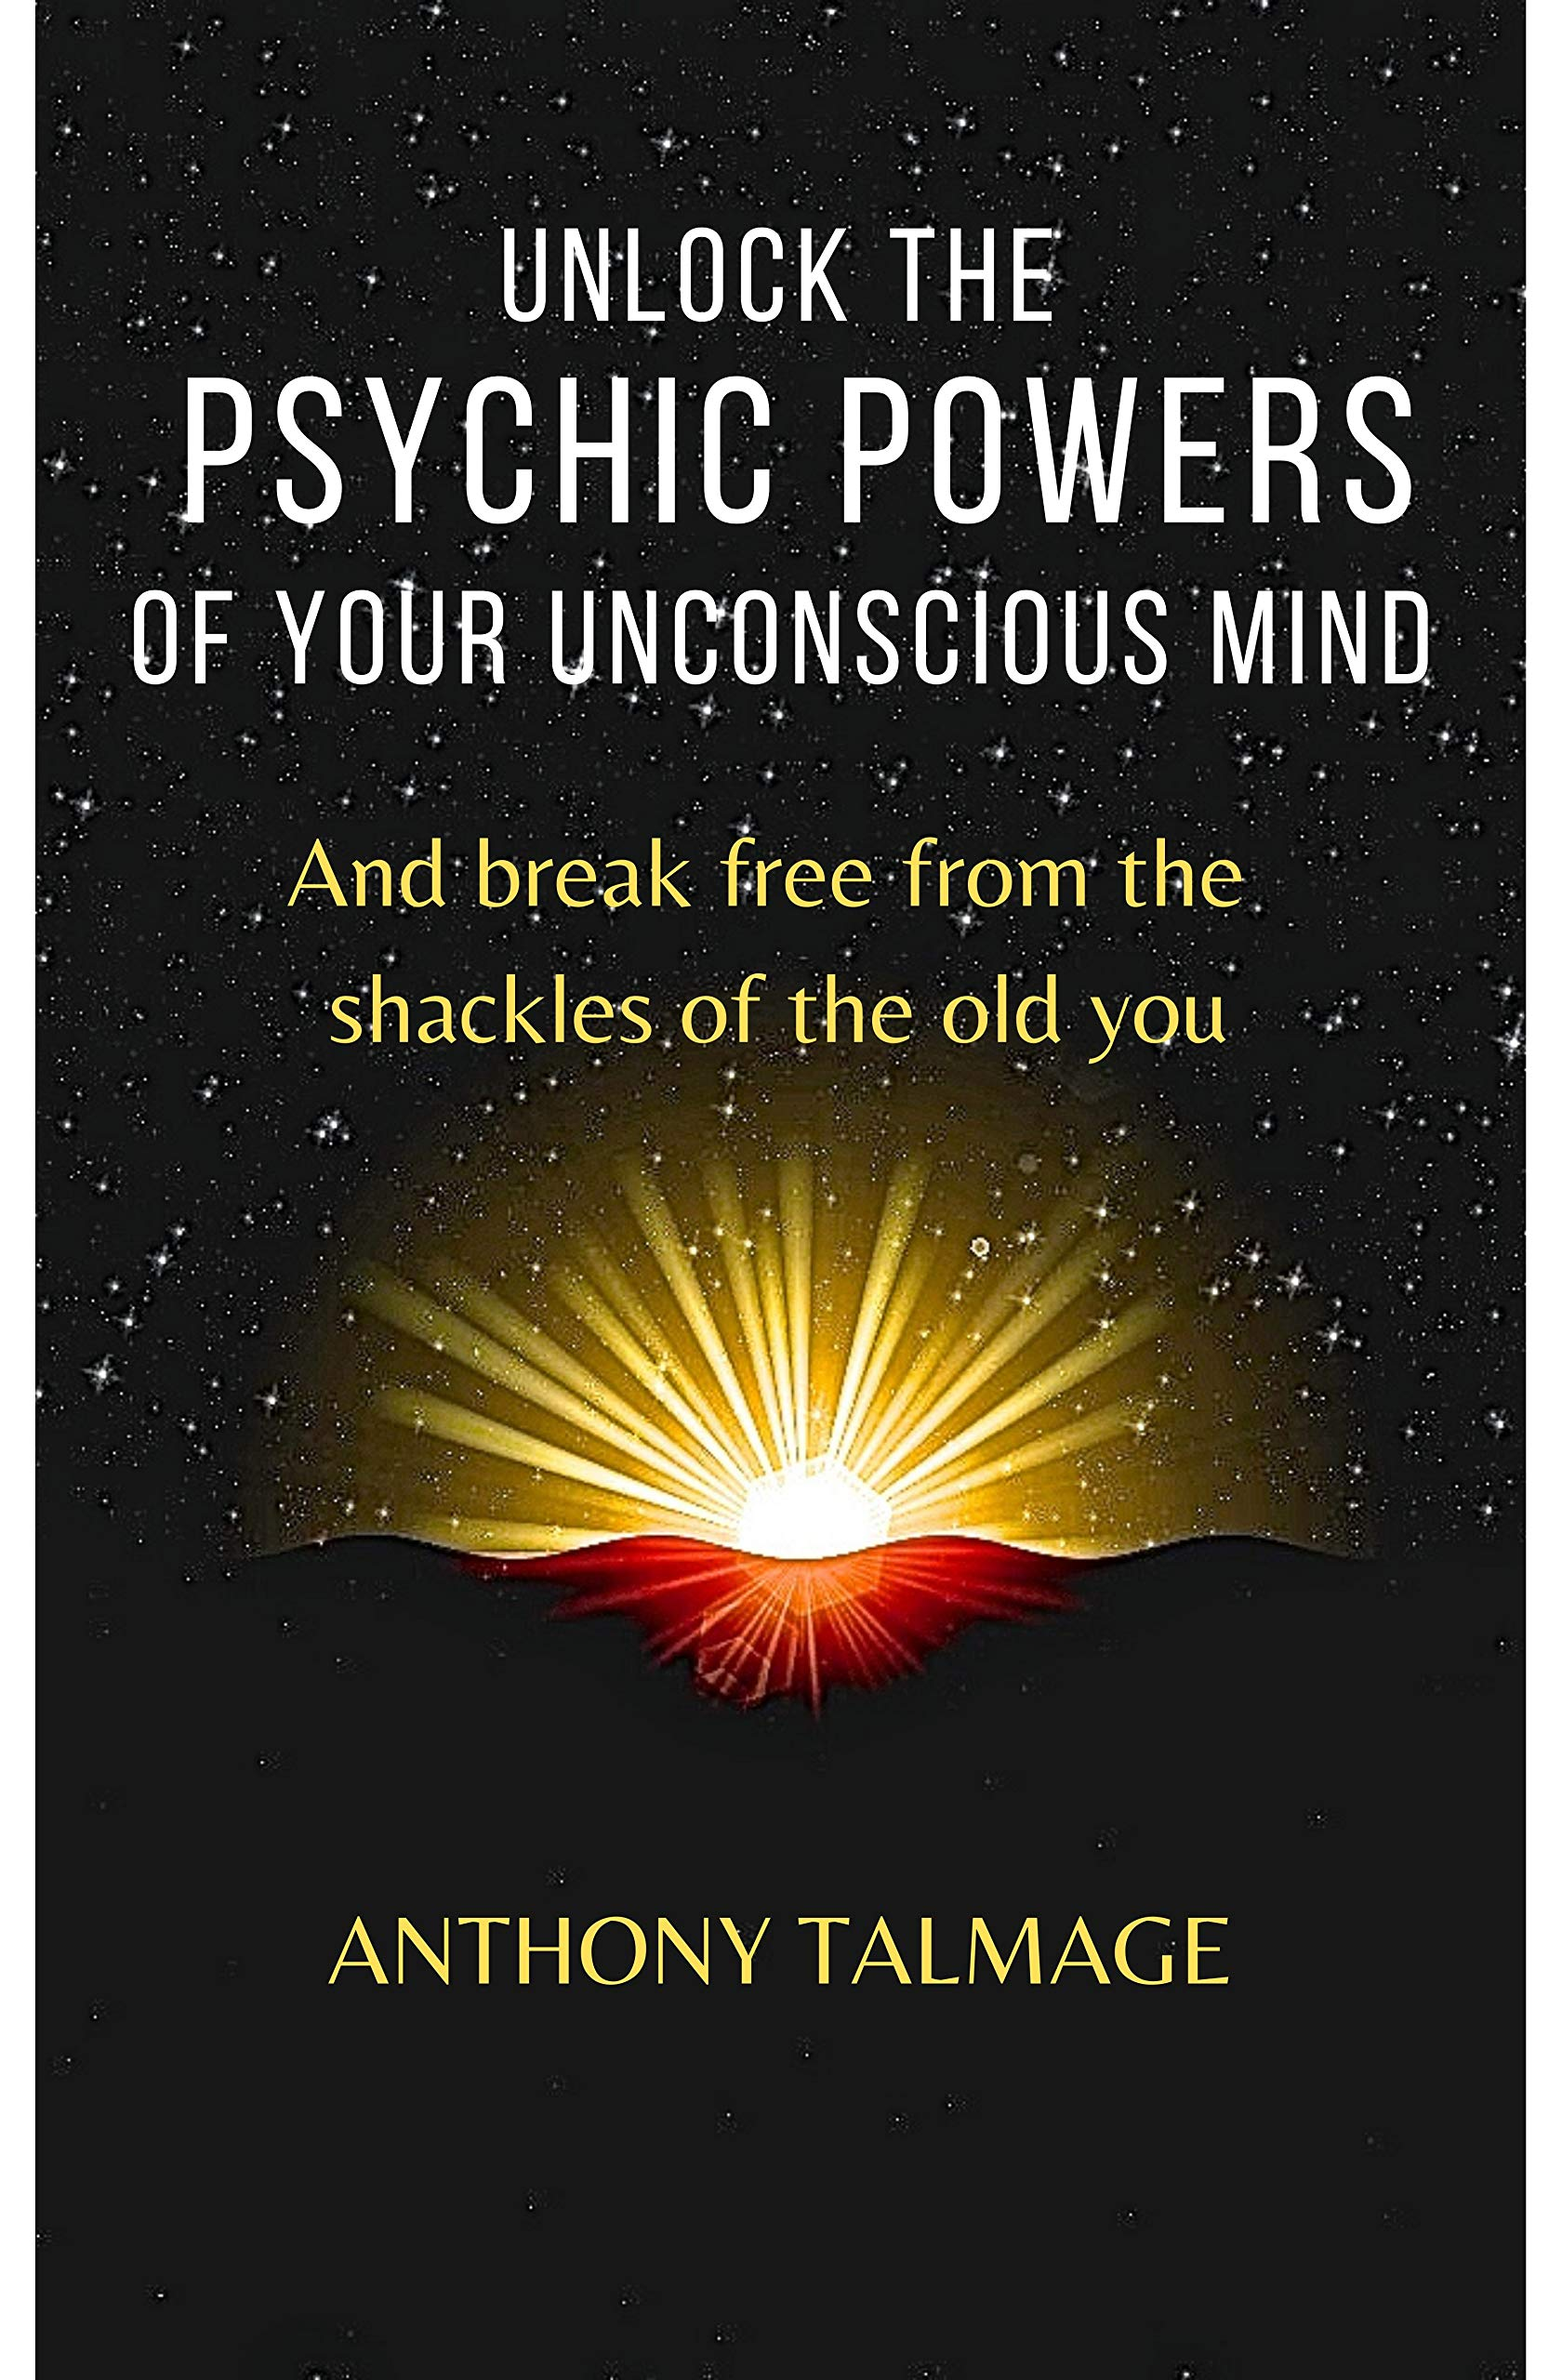 UNLOCK THE PSYCHIC POWERS OF YOUR UNCONSCIOUS MIND: And break free from the shackles of the old you (Psychic mind Book 3)